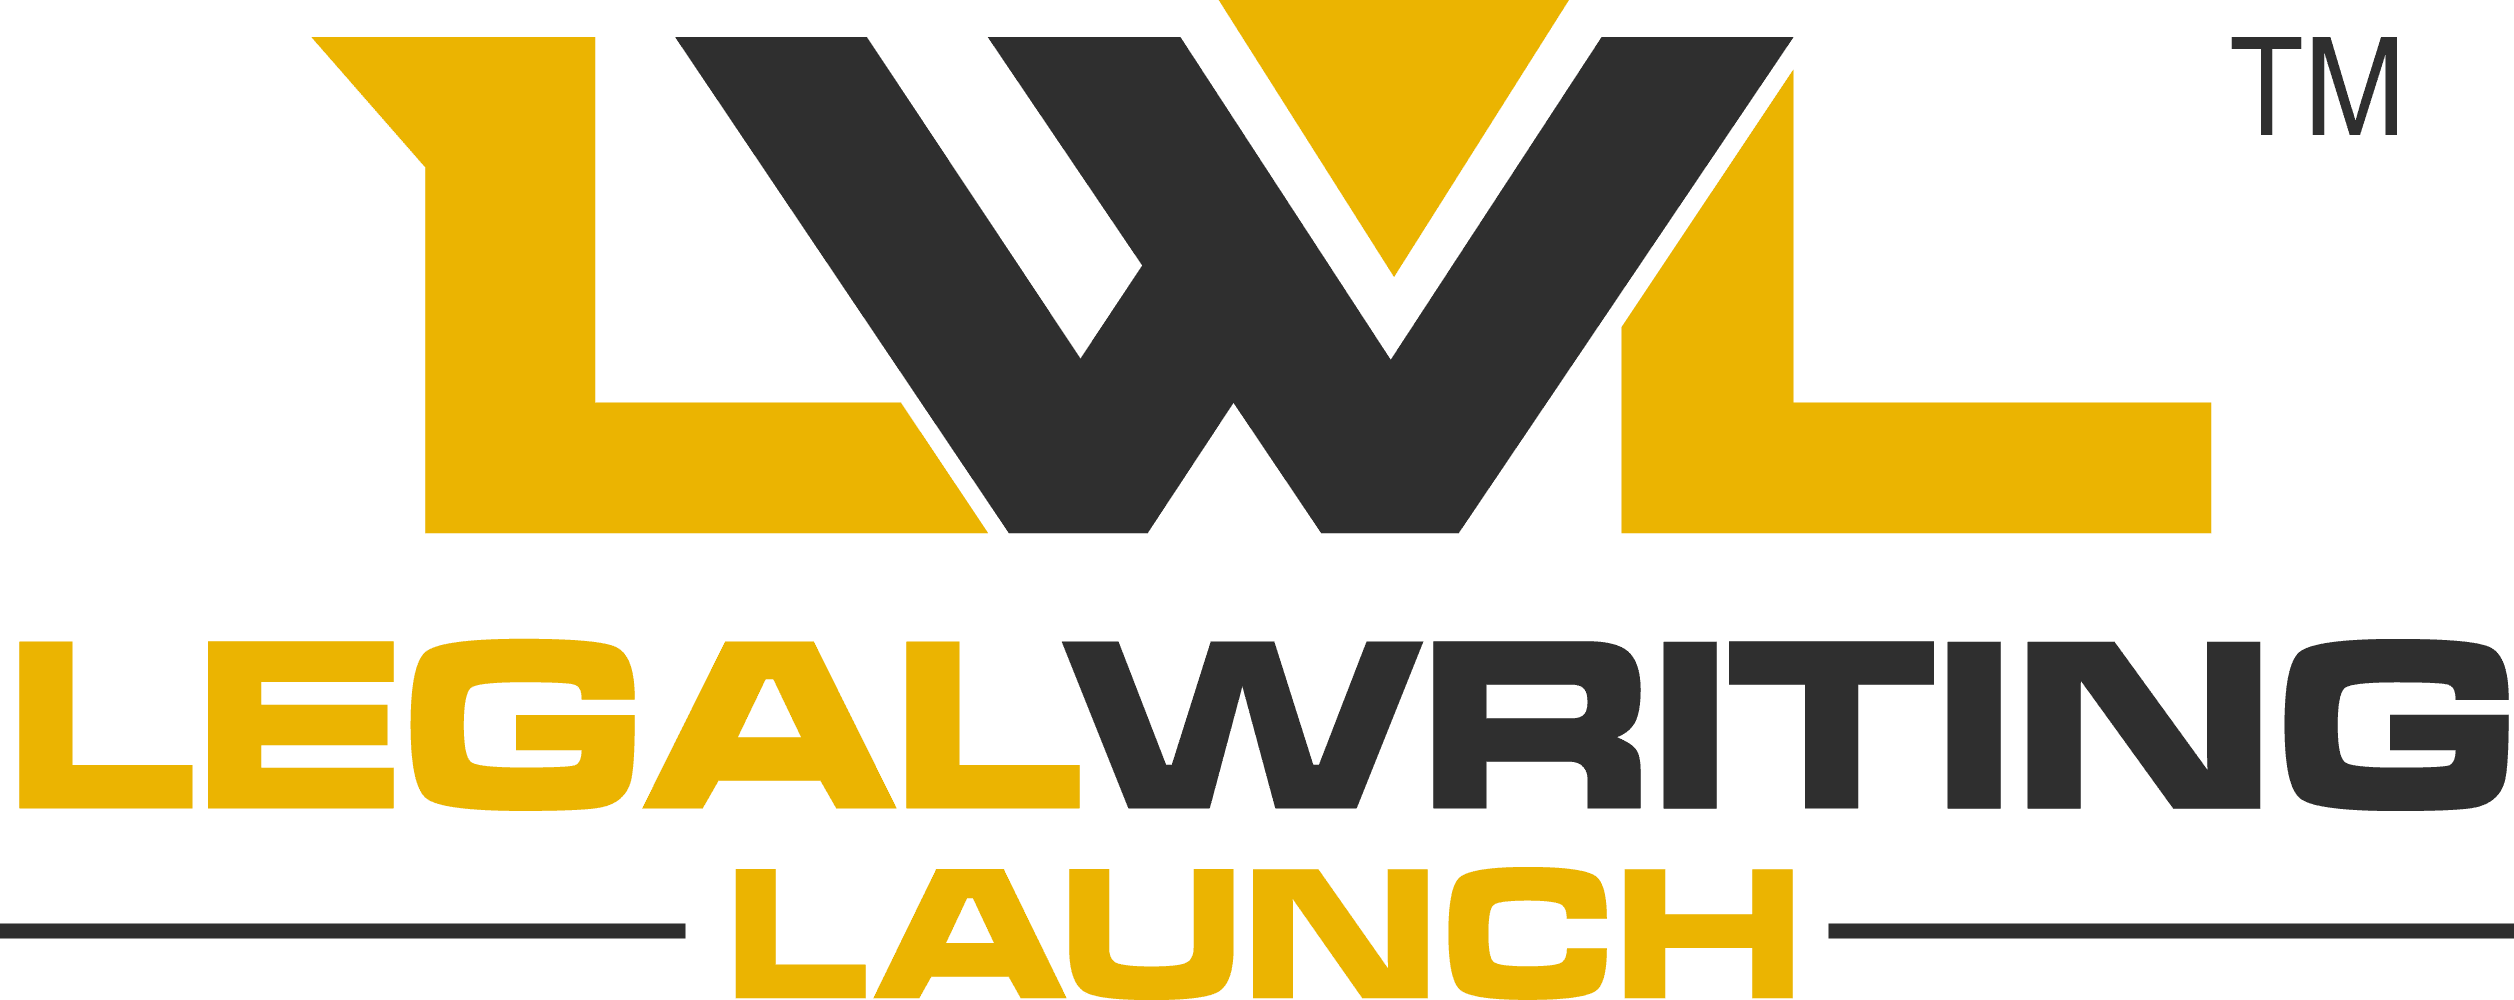 Legal Writing Launch Logo with Trademark